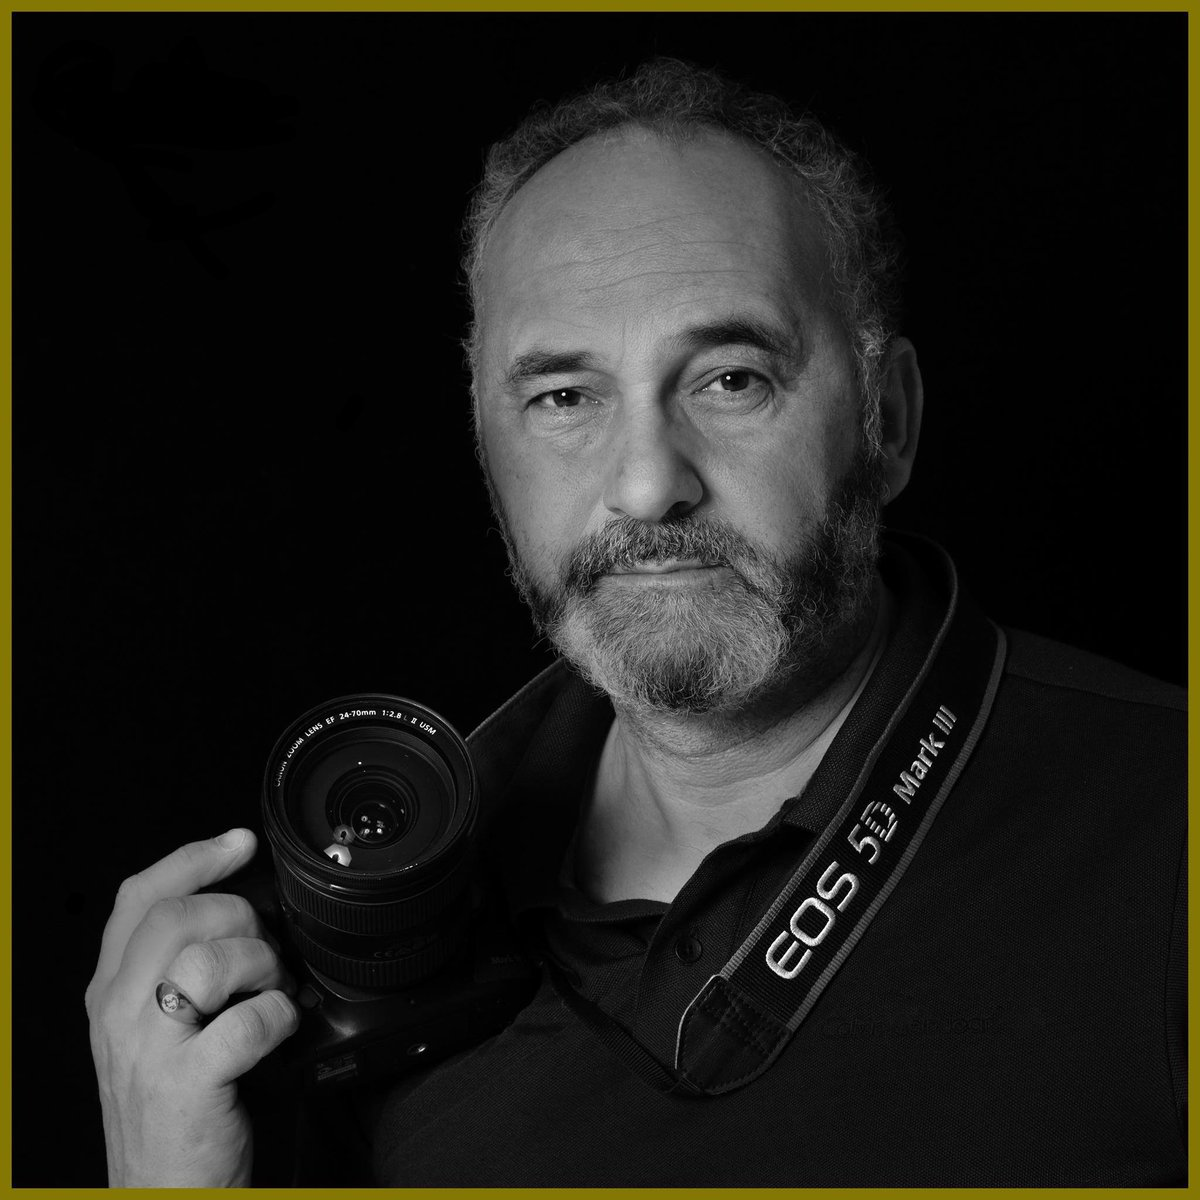 International photographer Gino Nalini is offering professional offsite photography to all our students and visitors. To book, contact us at https://t.co/i4rykoGbER #vocalcoach #singers #musicians #singinglessons #singing #singingwarmups #warmups #onlinelessons https://t.co/HEaojOc7K9